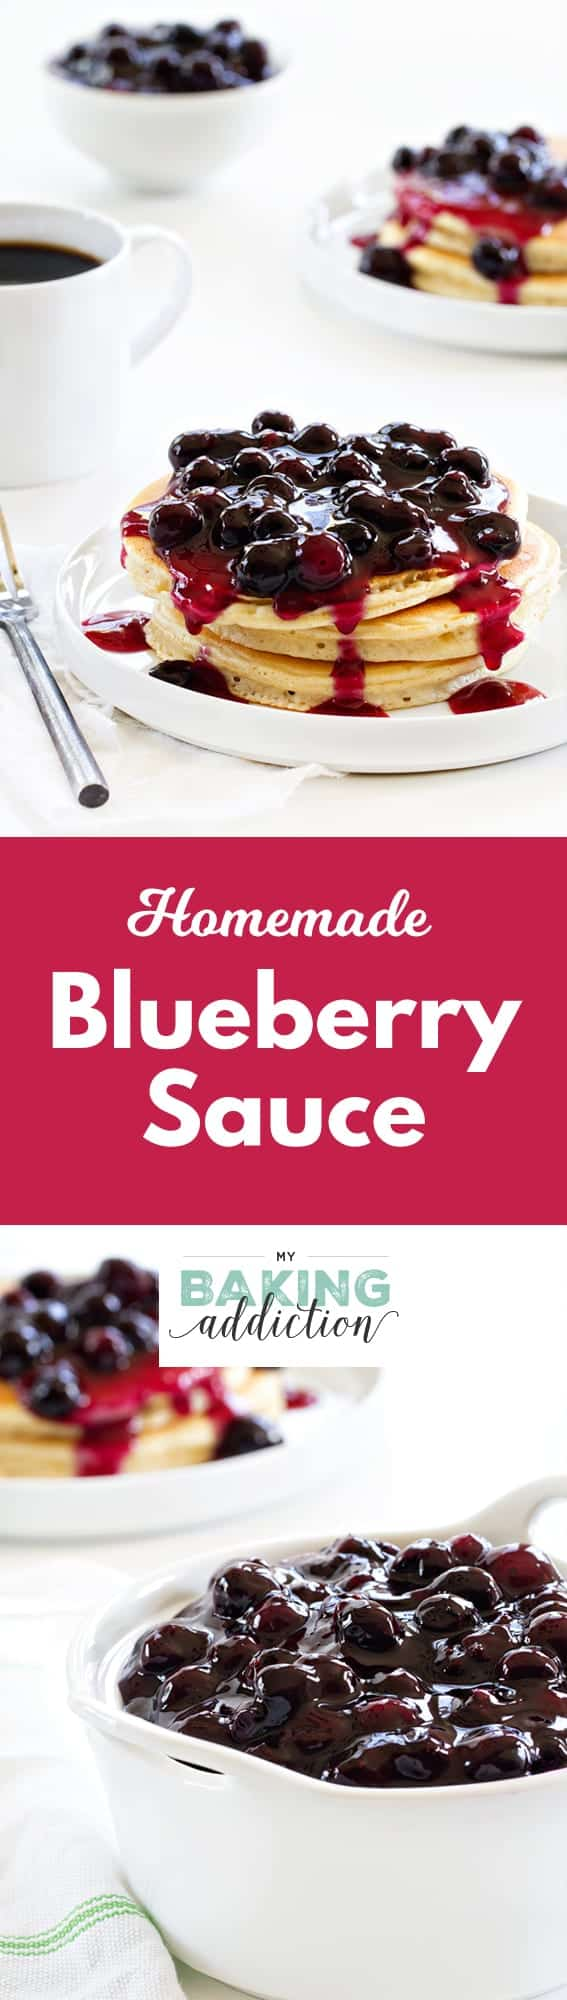 Homemade Blueberry Sauce | My Baking Addiction